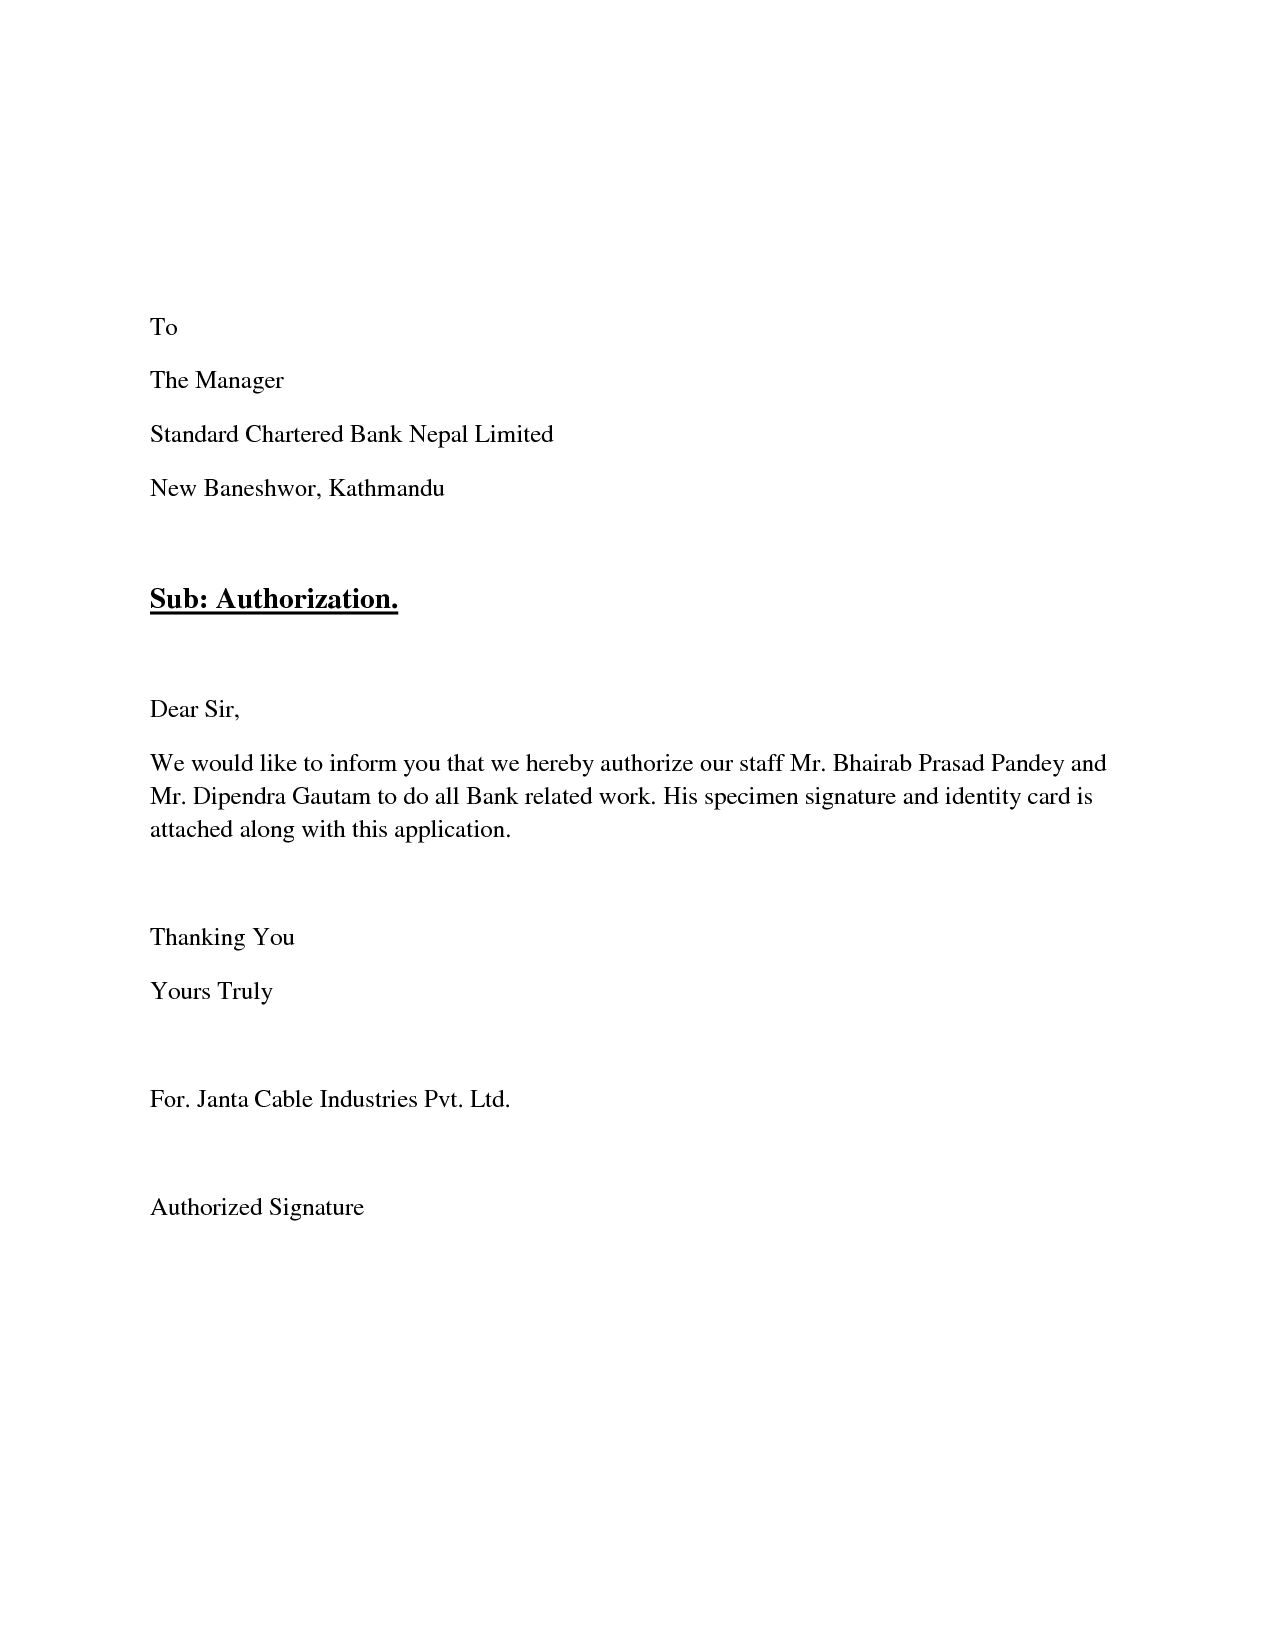 Signatory Authority Letter Format Best Template Collection Sample